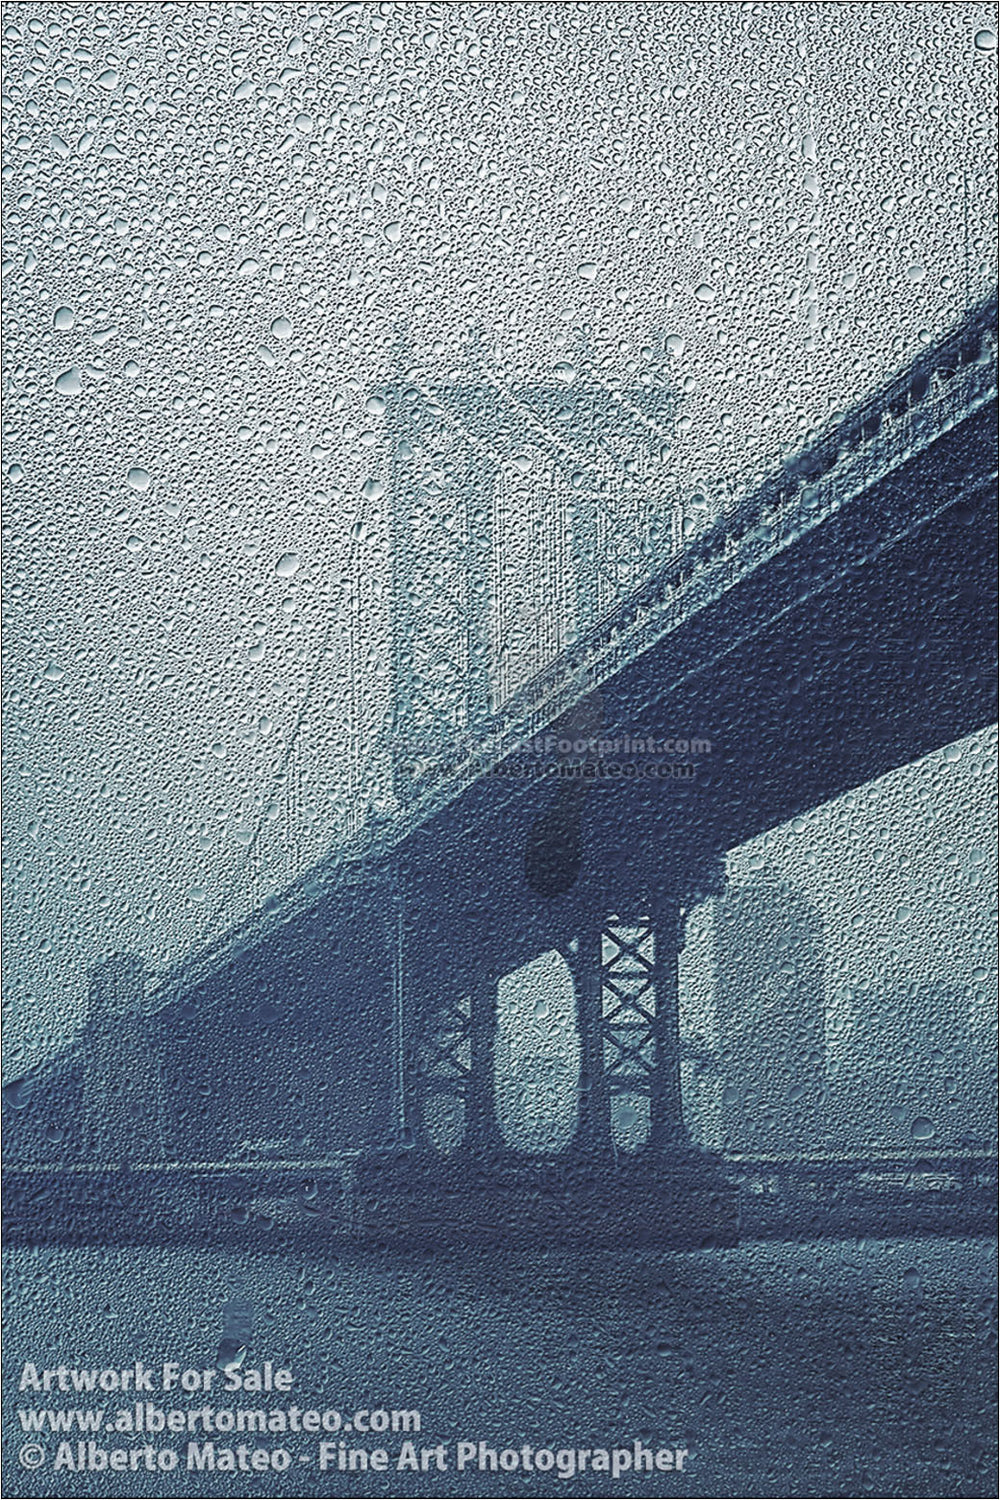 Manhattan Bridge Pillar, New York. | Limited Edition Print.